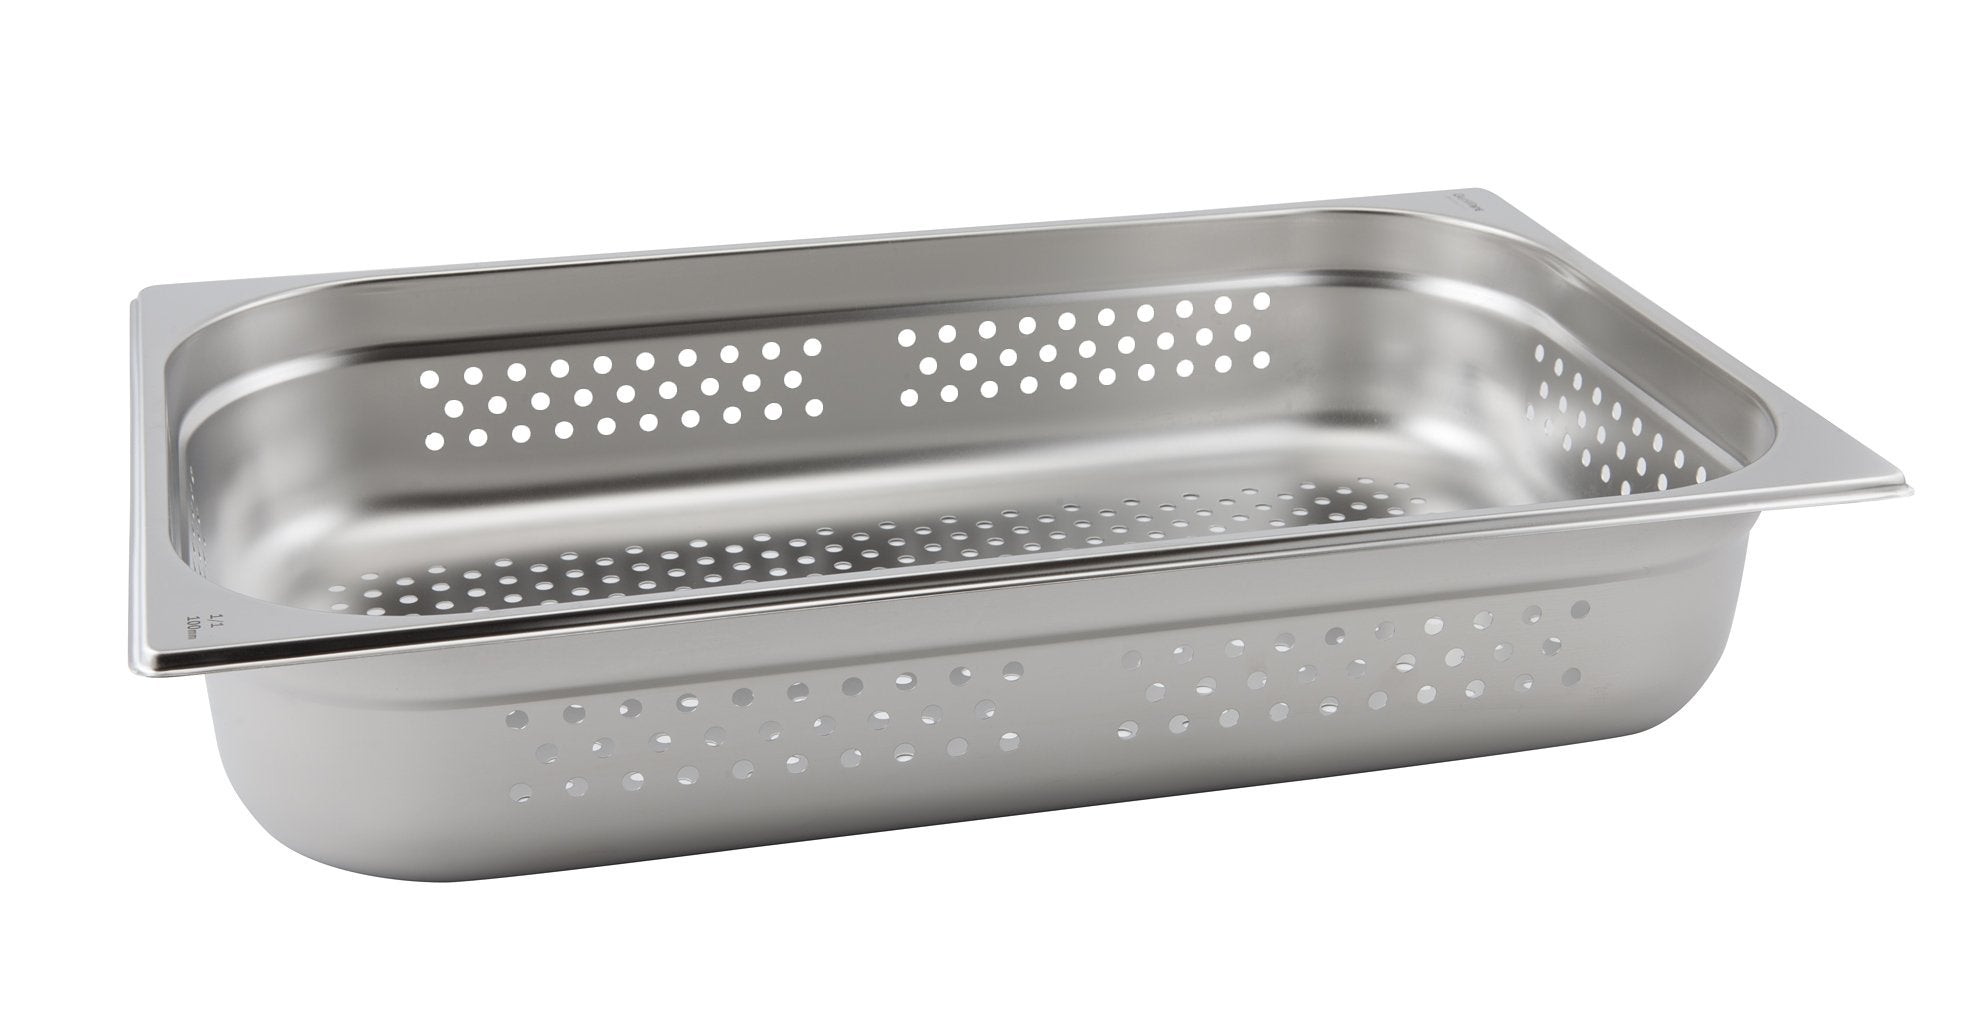 Perforated St/St Gastronorm Pan 1/1 - 40mm Deep